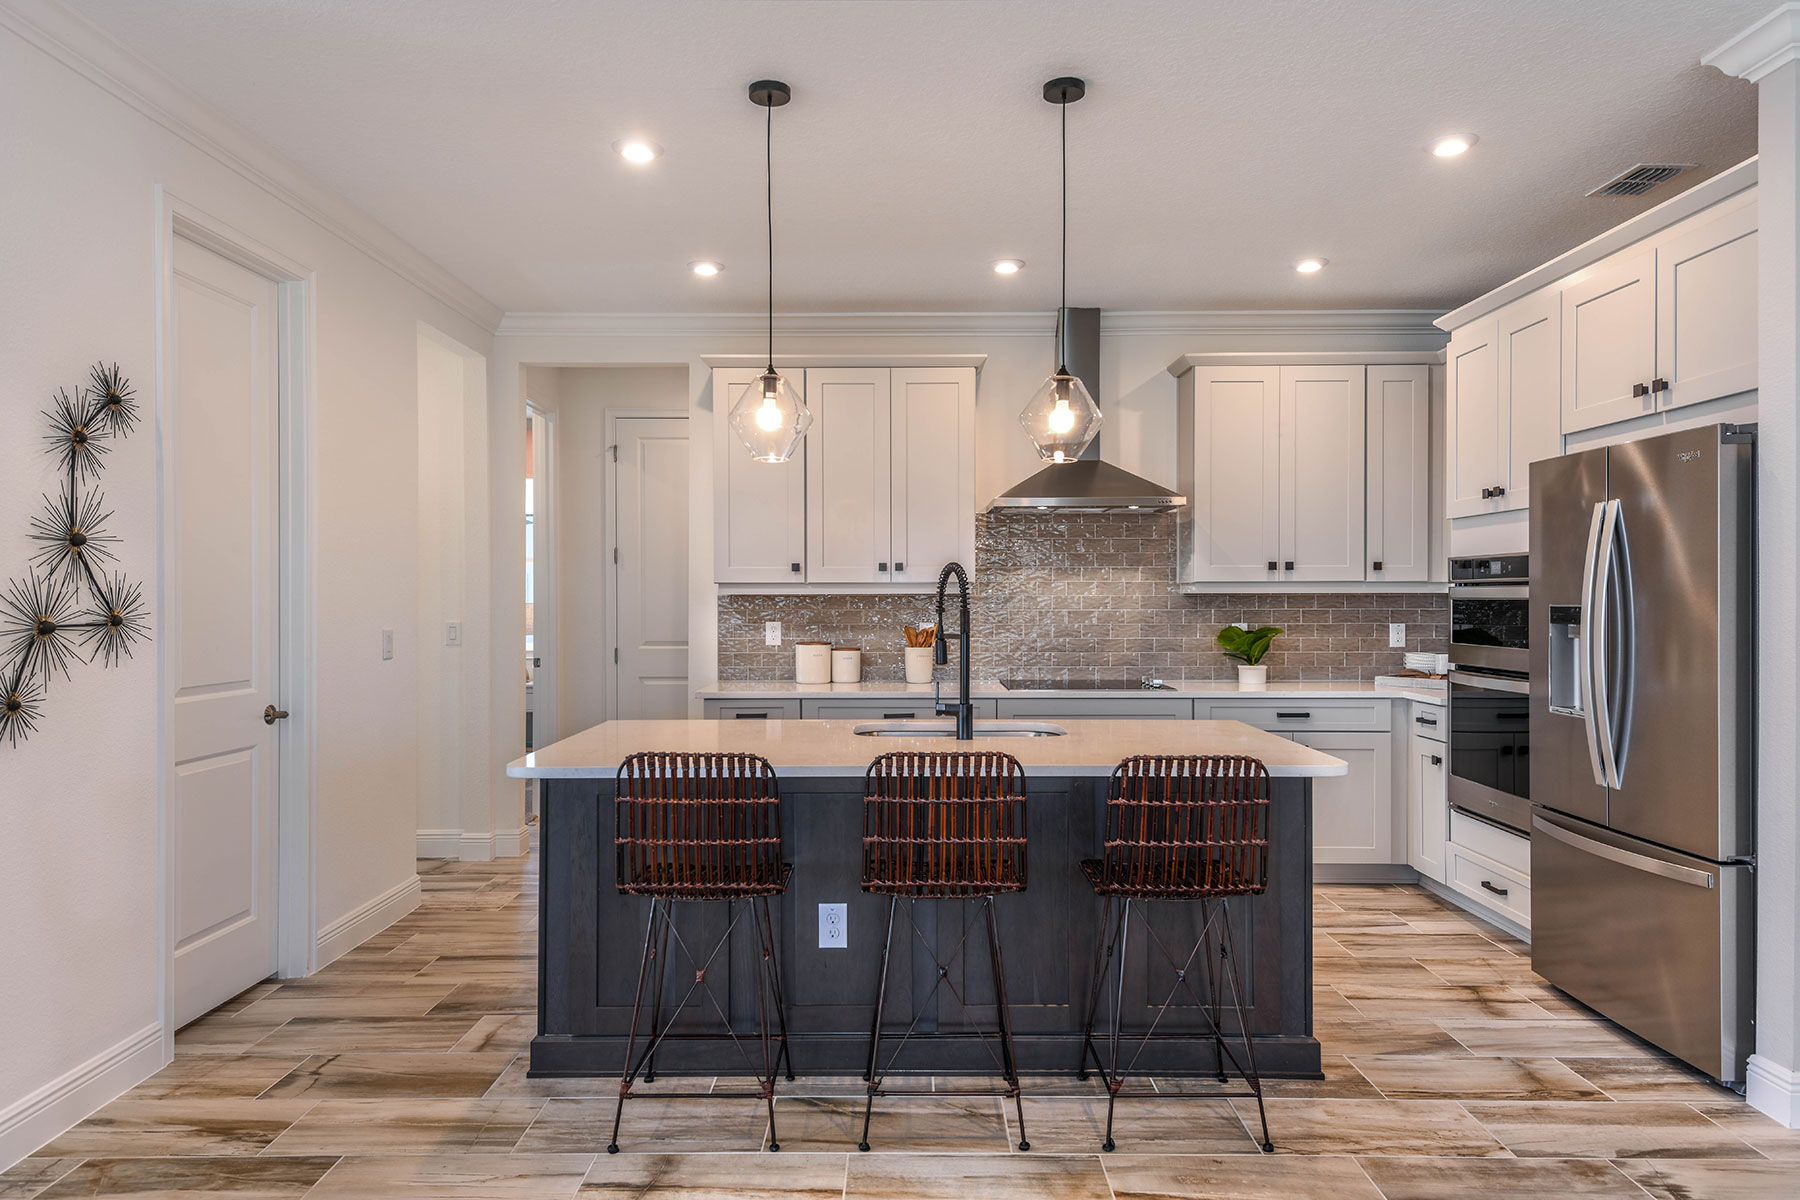 Elm Plan Kitchen at Parkview at Long Lake Ranch in Lutz Florida by Mattamy Homes